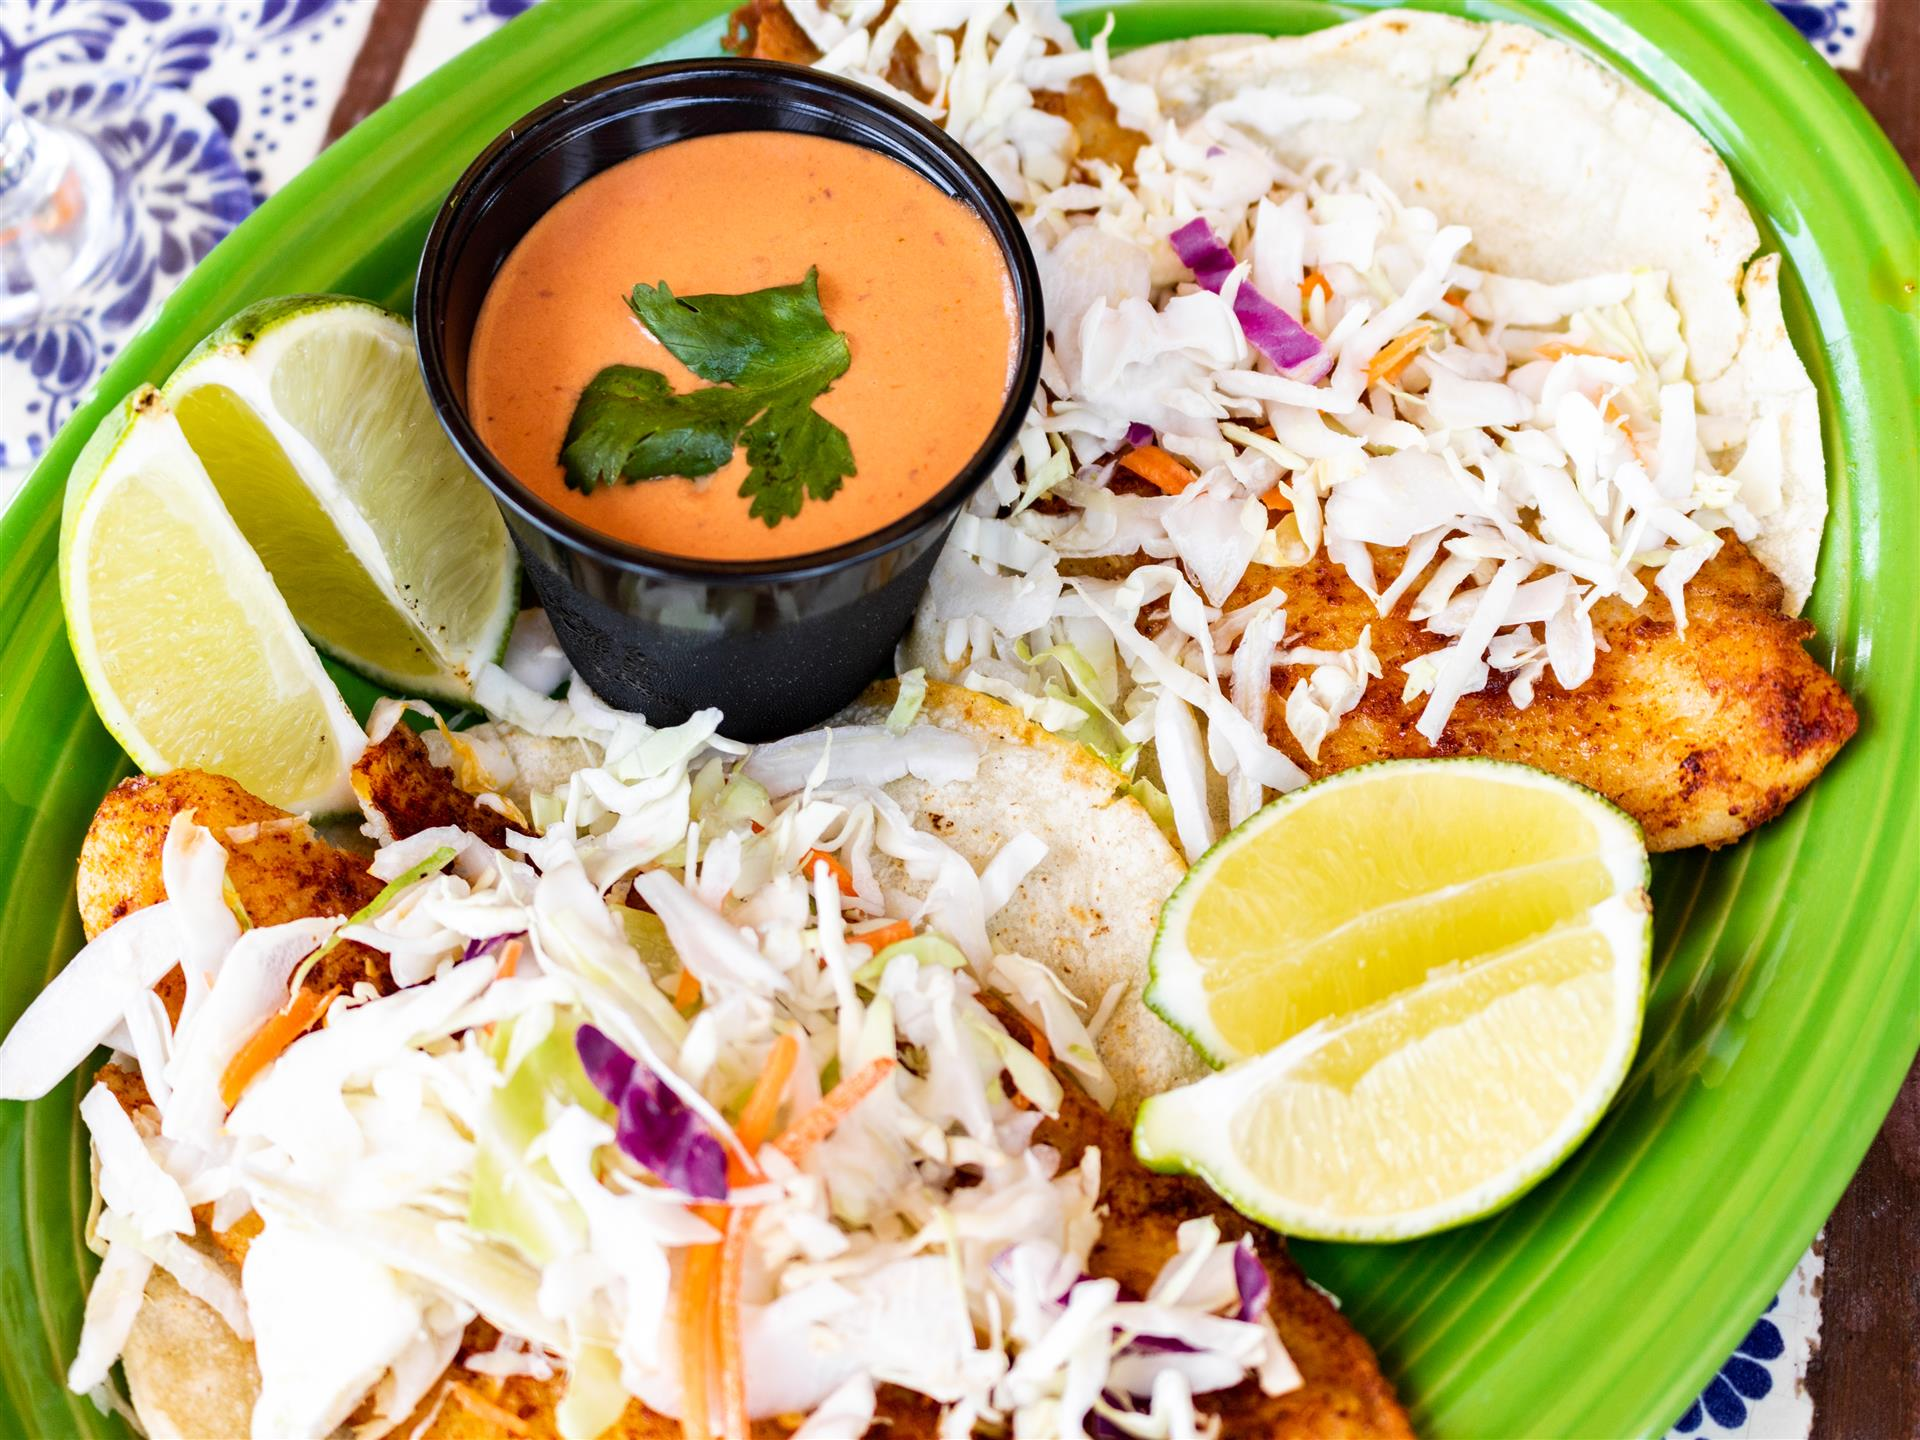 two fish tacos with lime wedges and dipping sauce on the side.